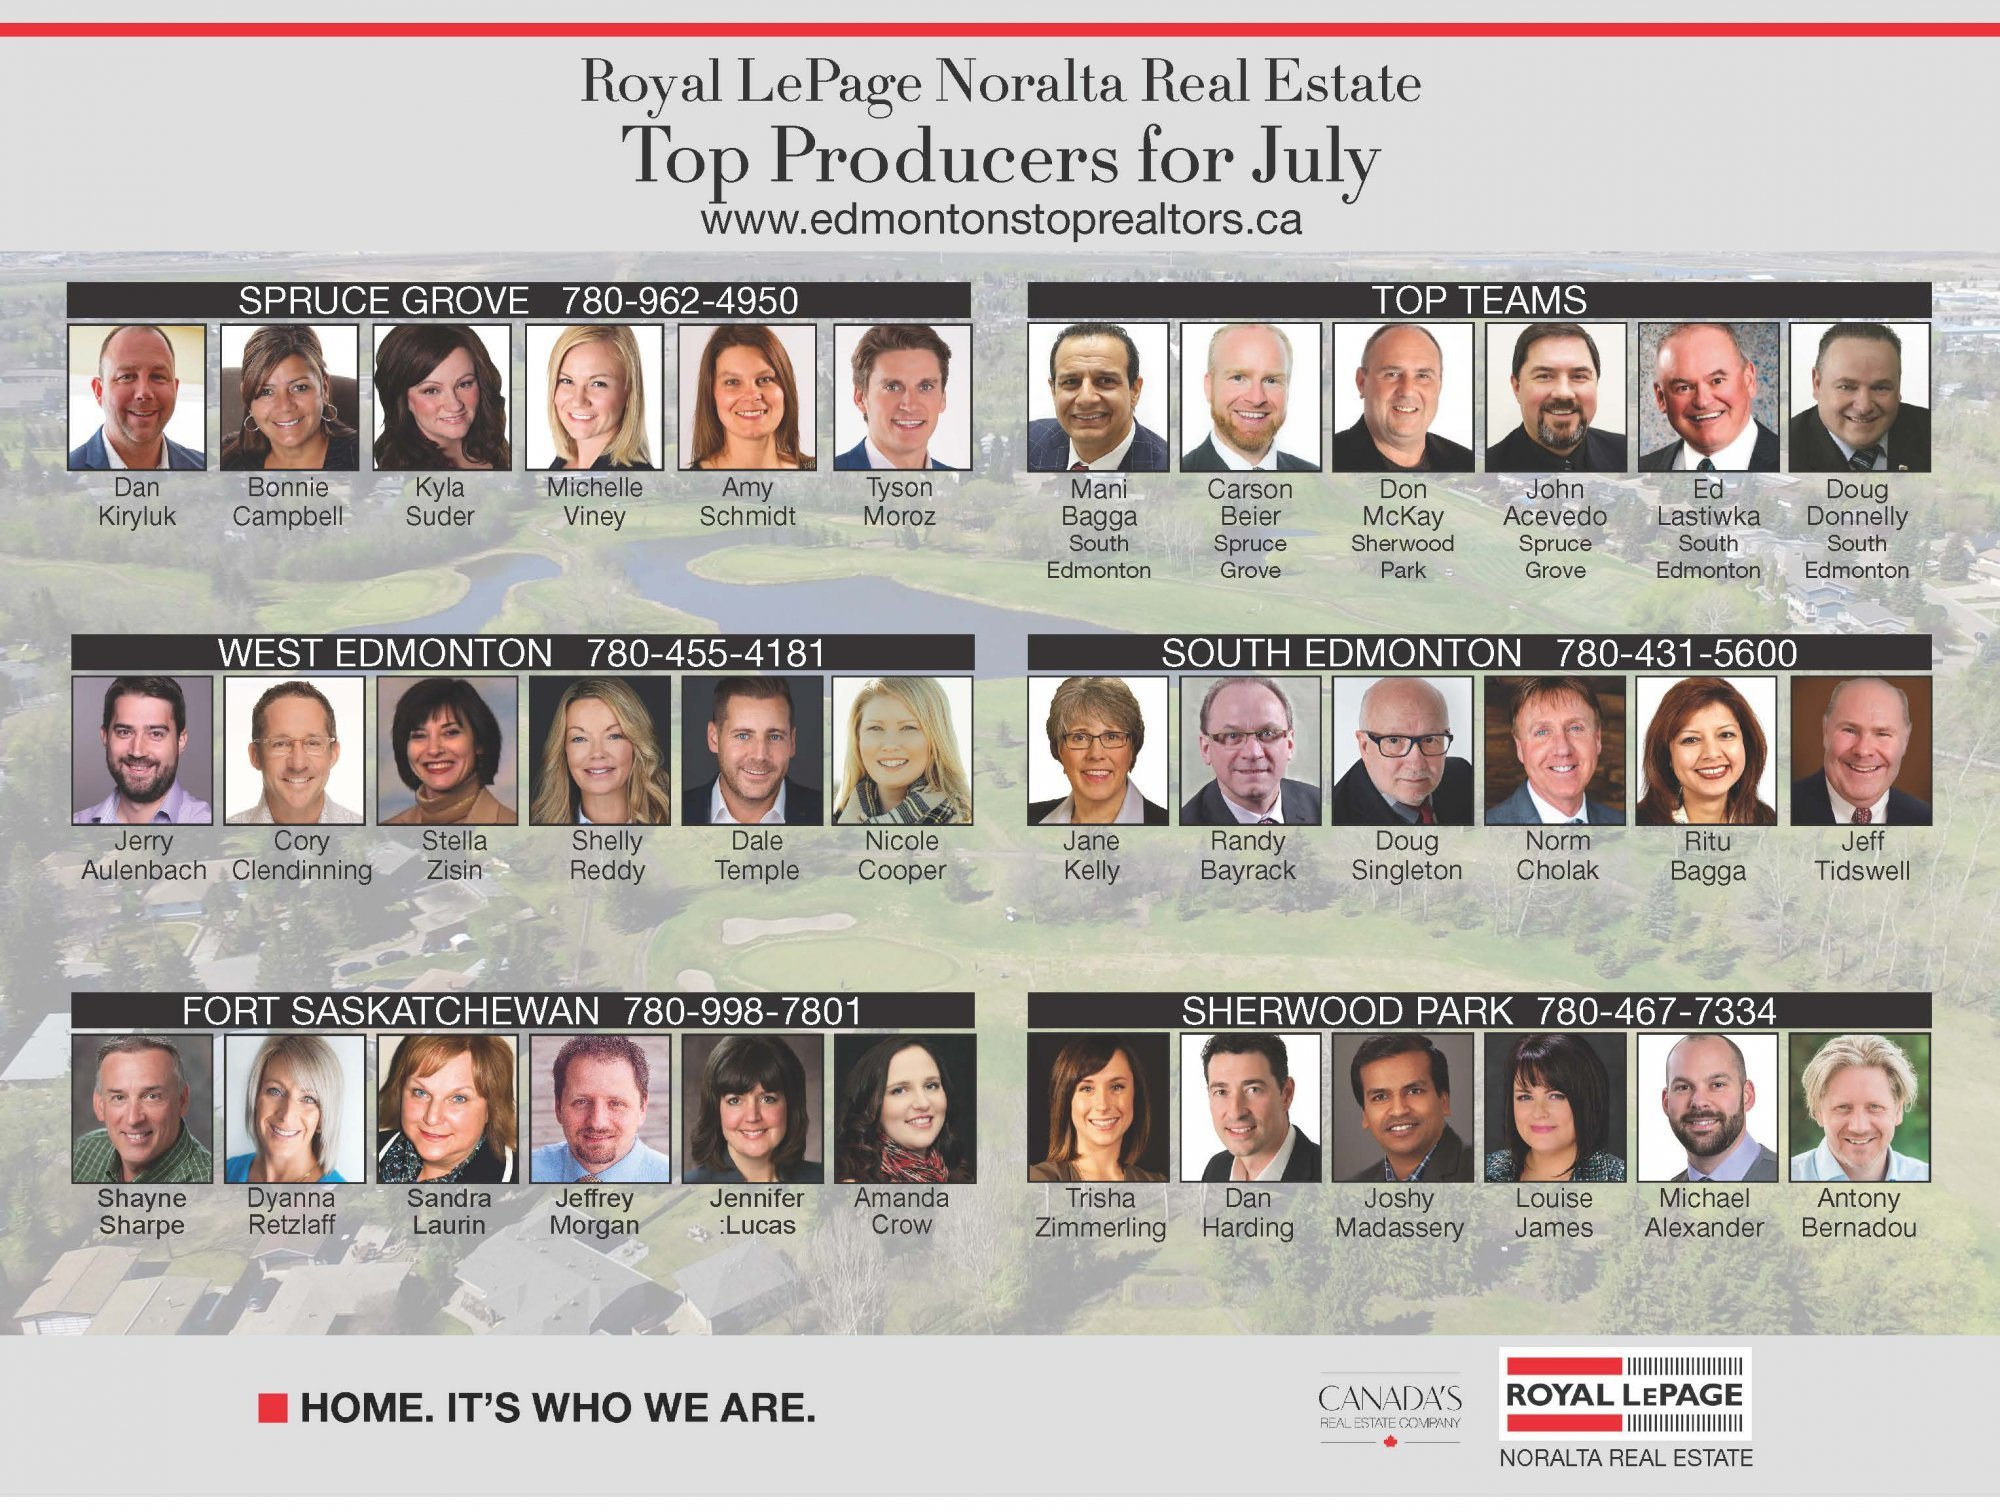 Royal LePage Noralta Real Estate July Top Producers